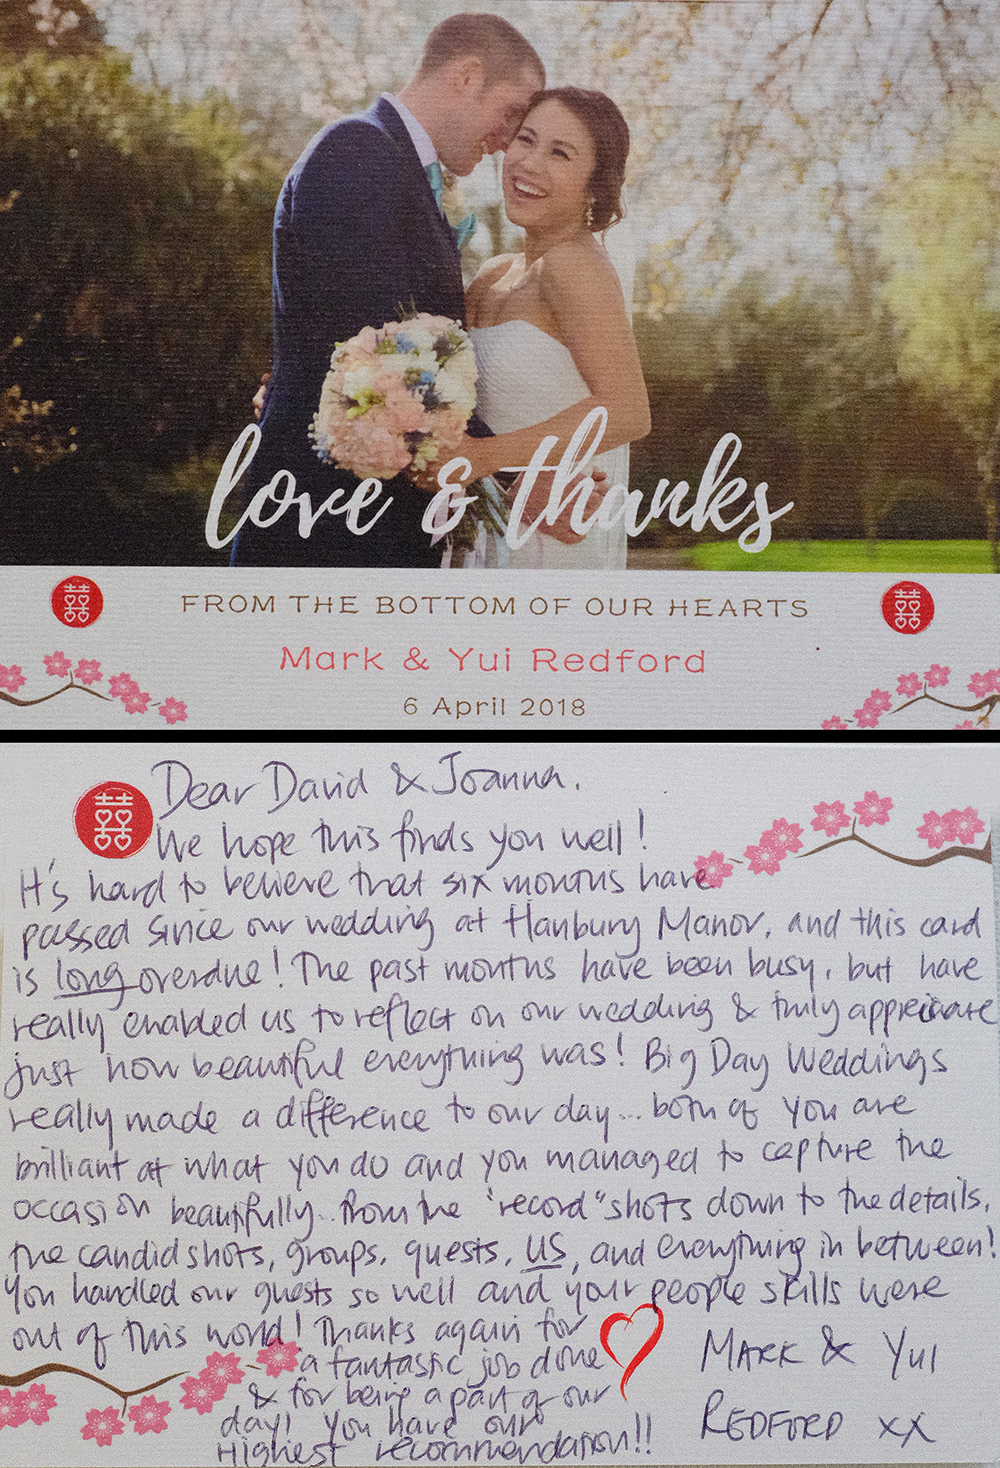 Another lovely 'Thank you' card through the post. Well, thank you! London Wedding Photographers